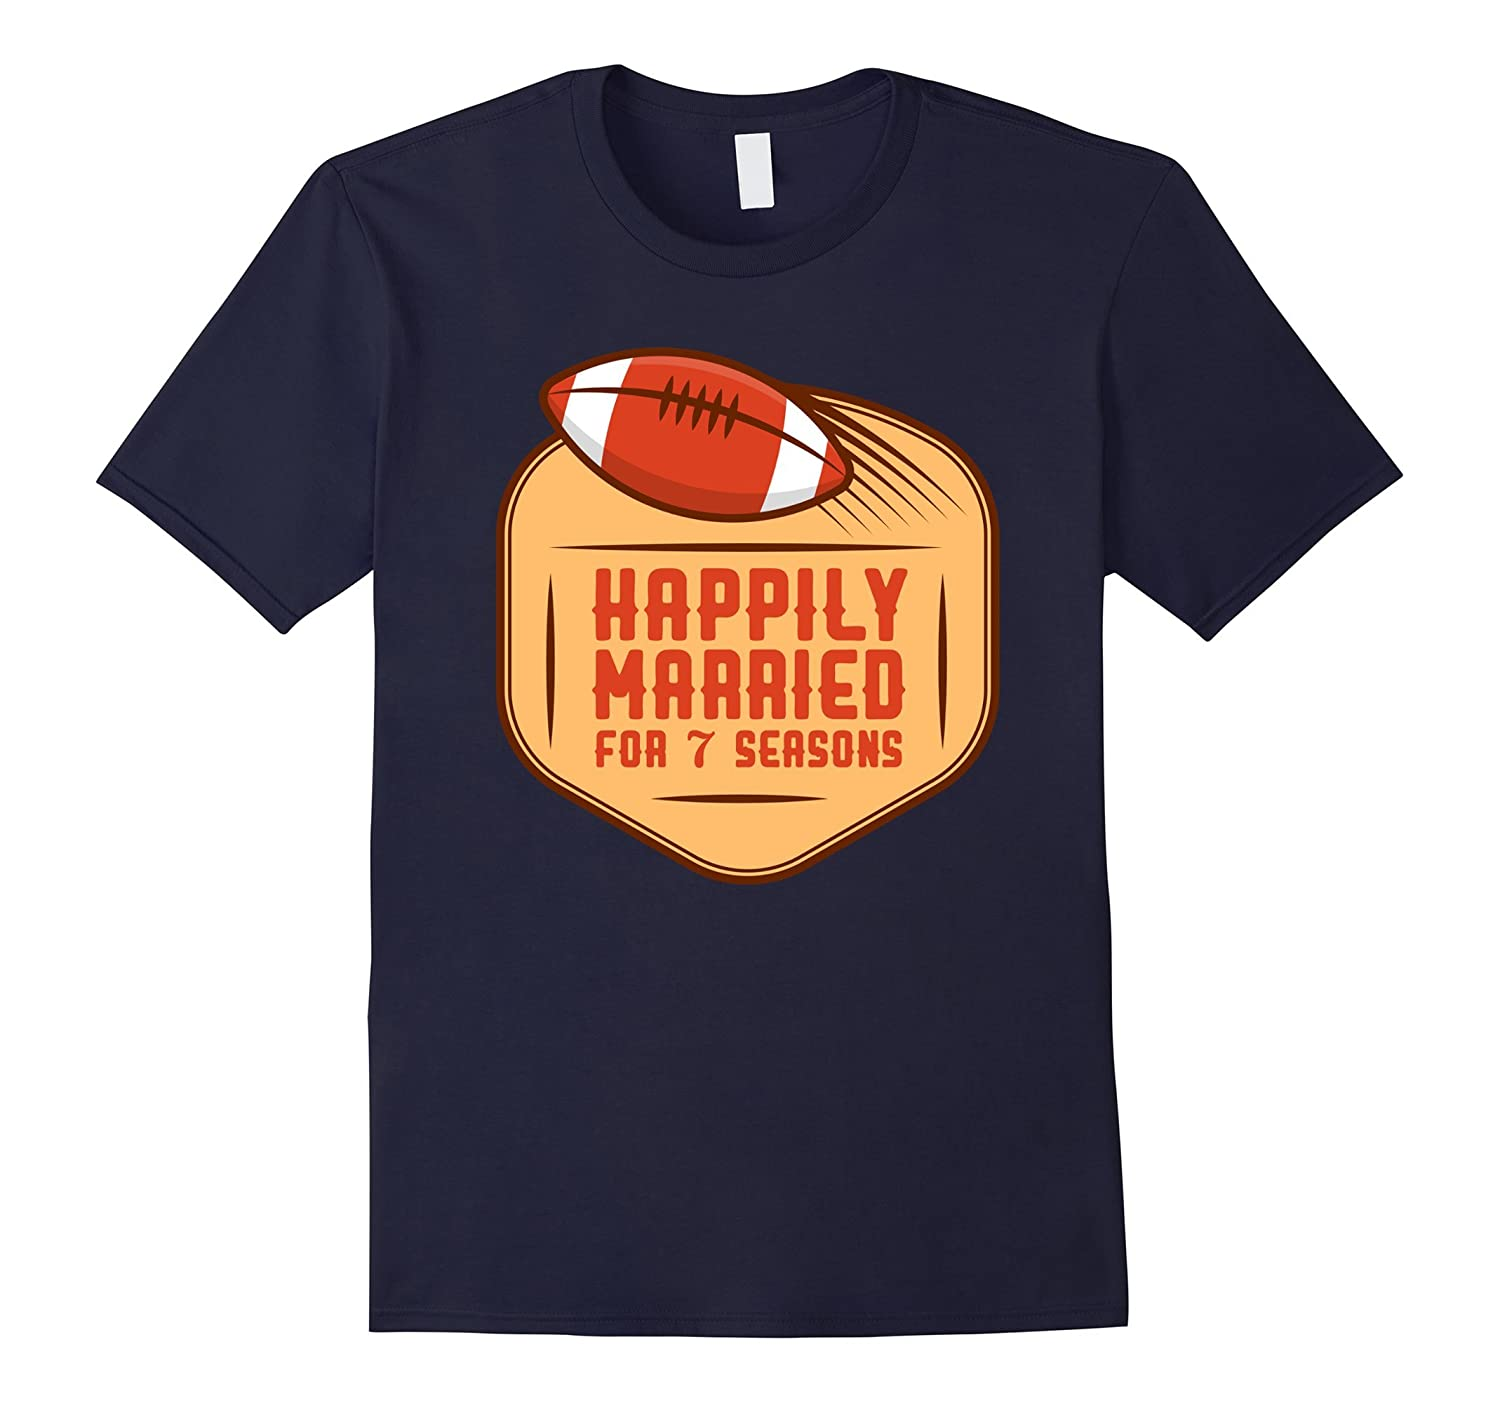 7th WEDDING ANNIVERSARY Shirt - Football Couple Season Shirt-FL